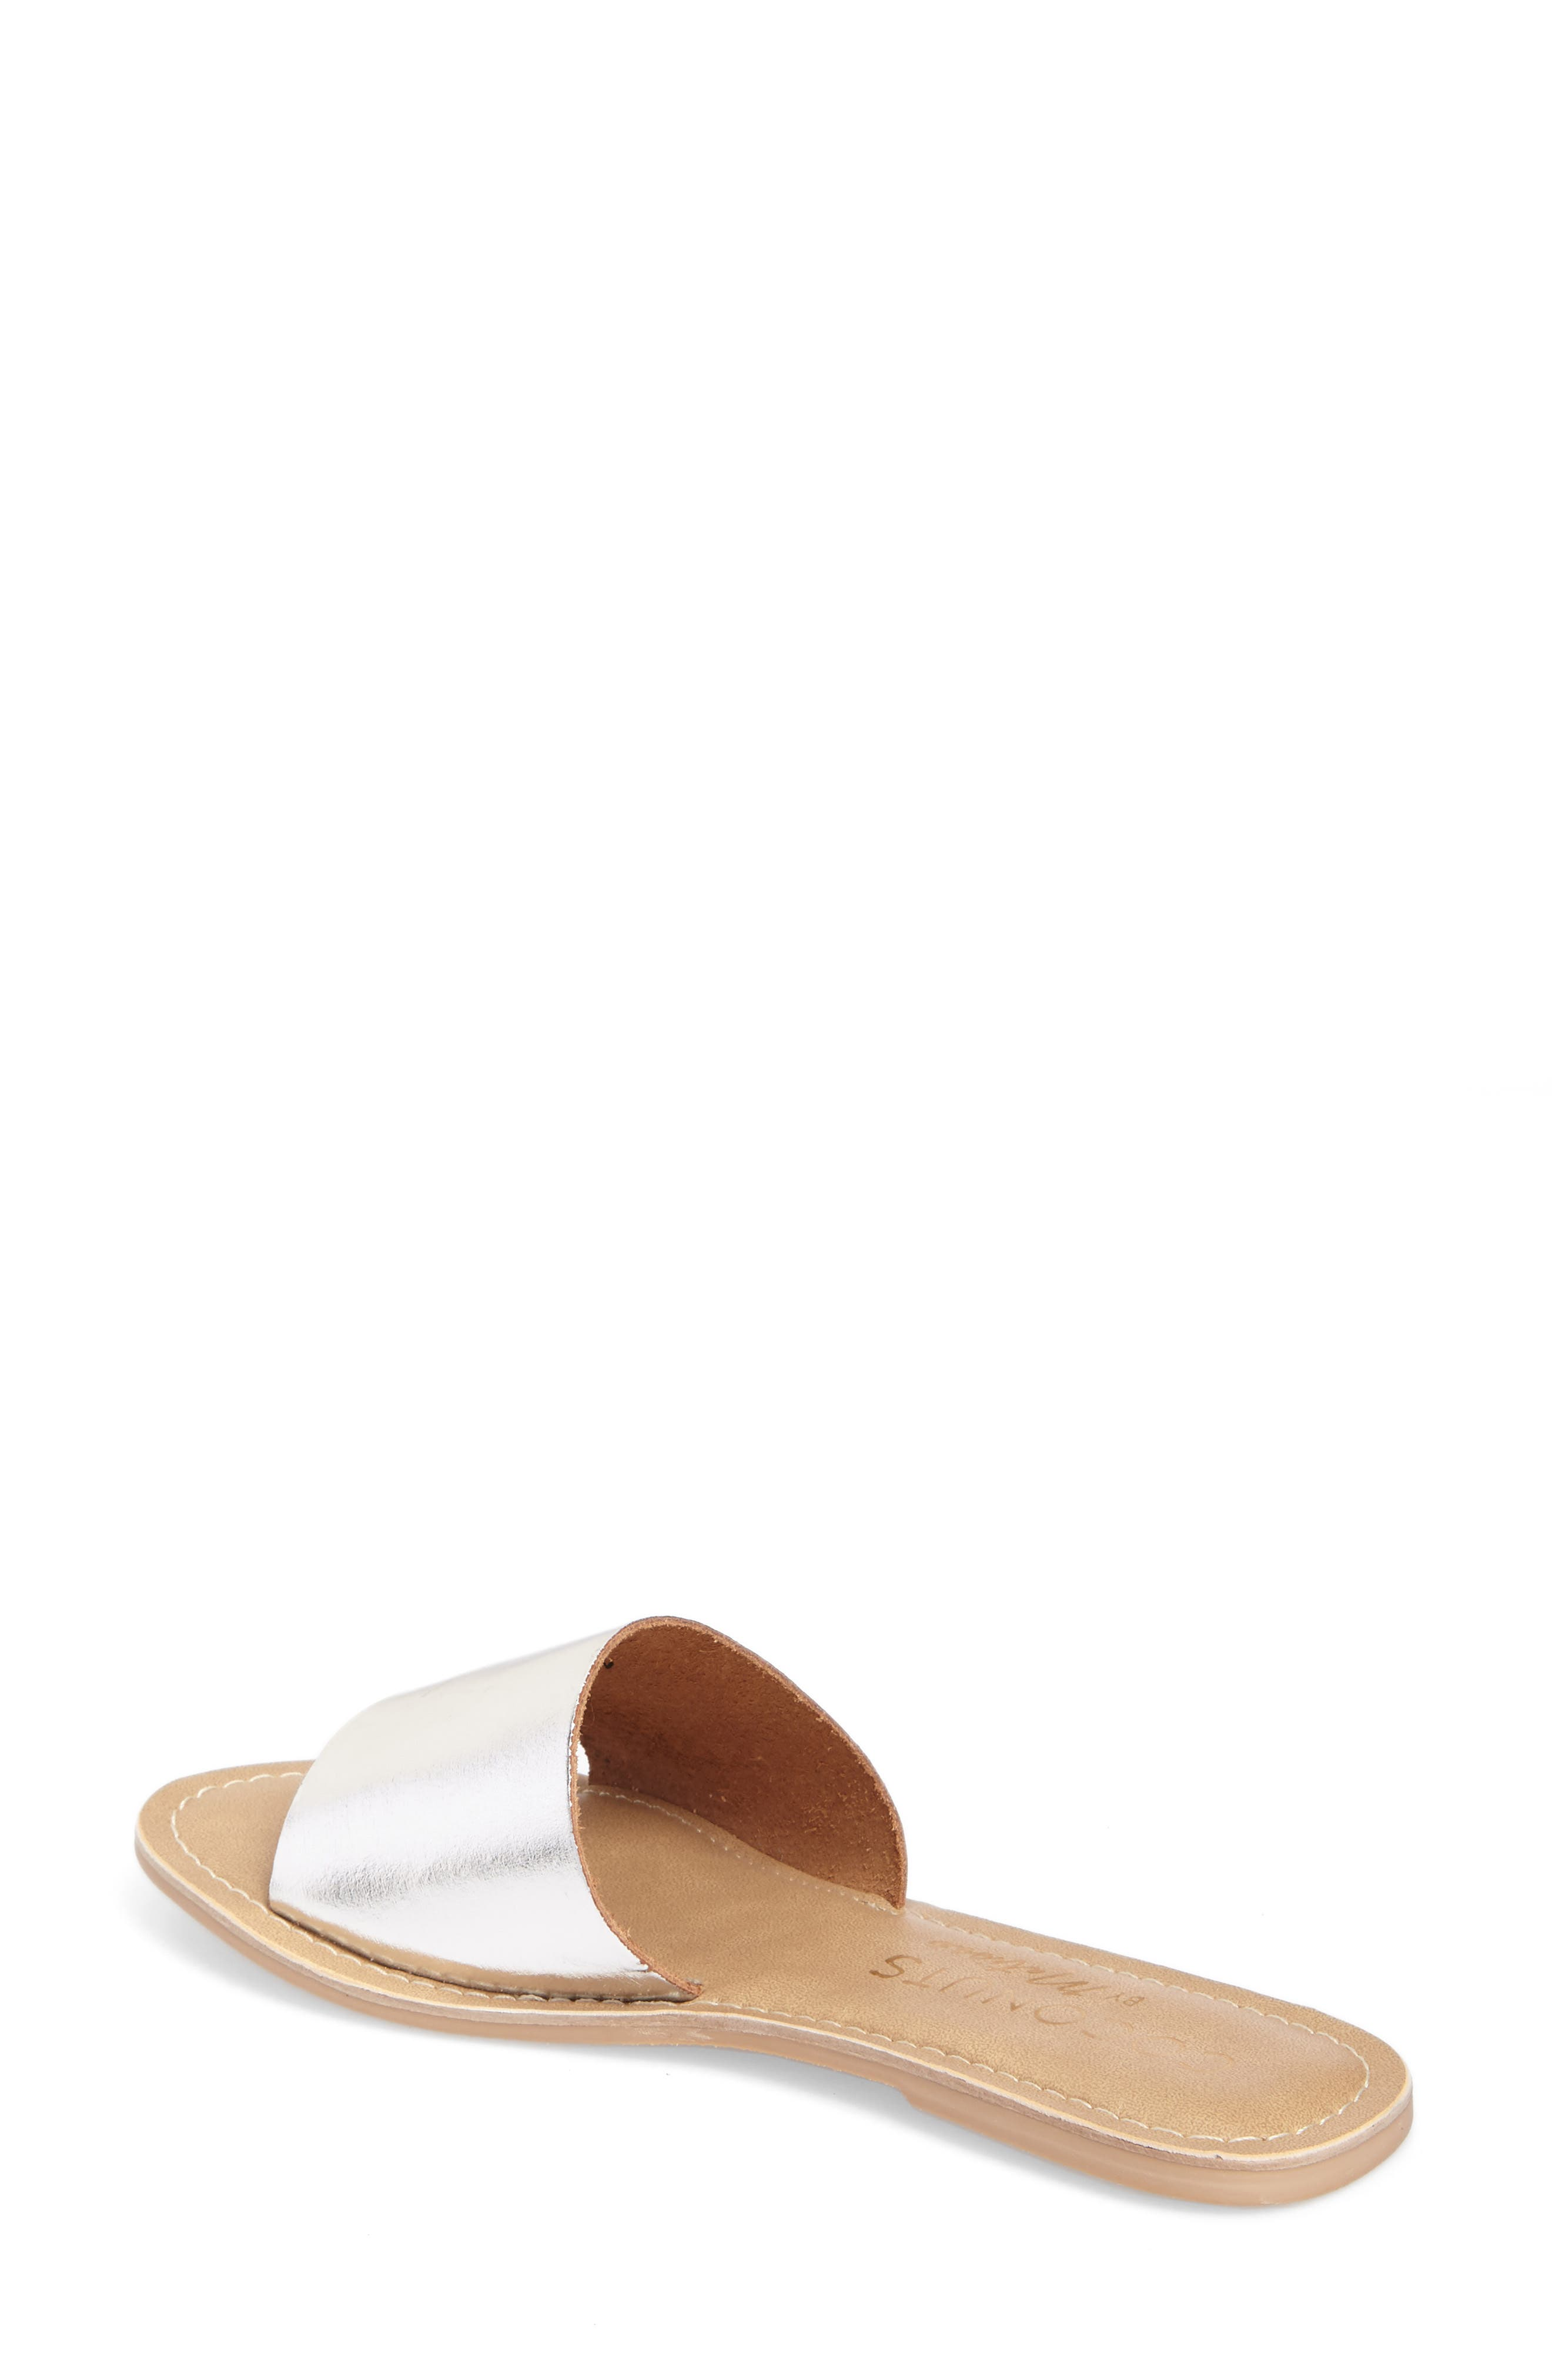 COCONUTS BY MATISSE, Cabana Slide Sandal, Alternate thumbnail 2, color, SILVER LEATHER